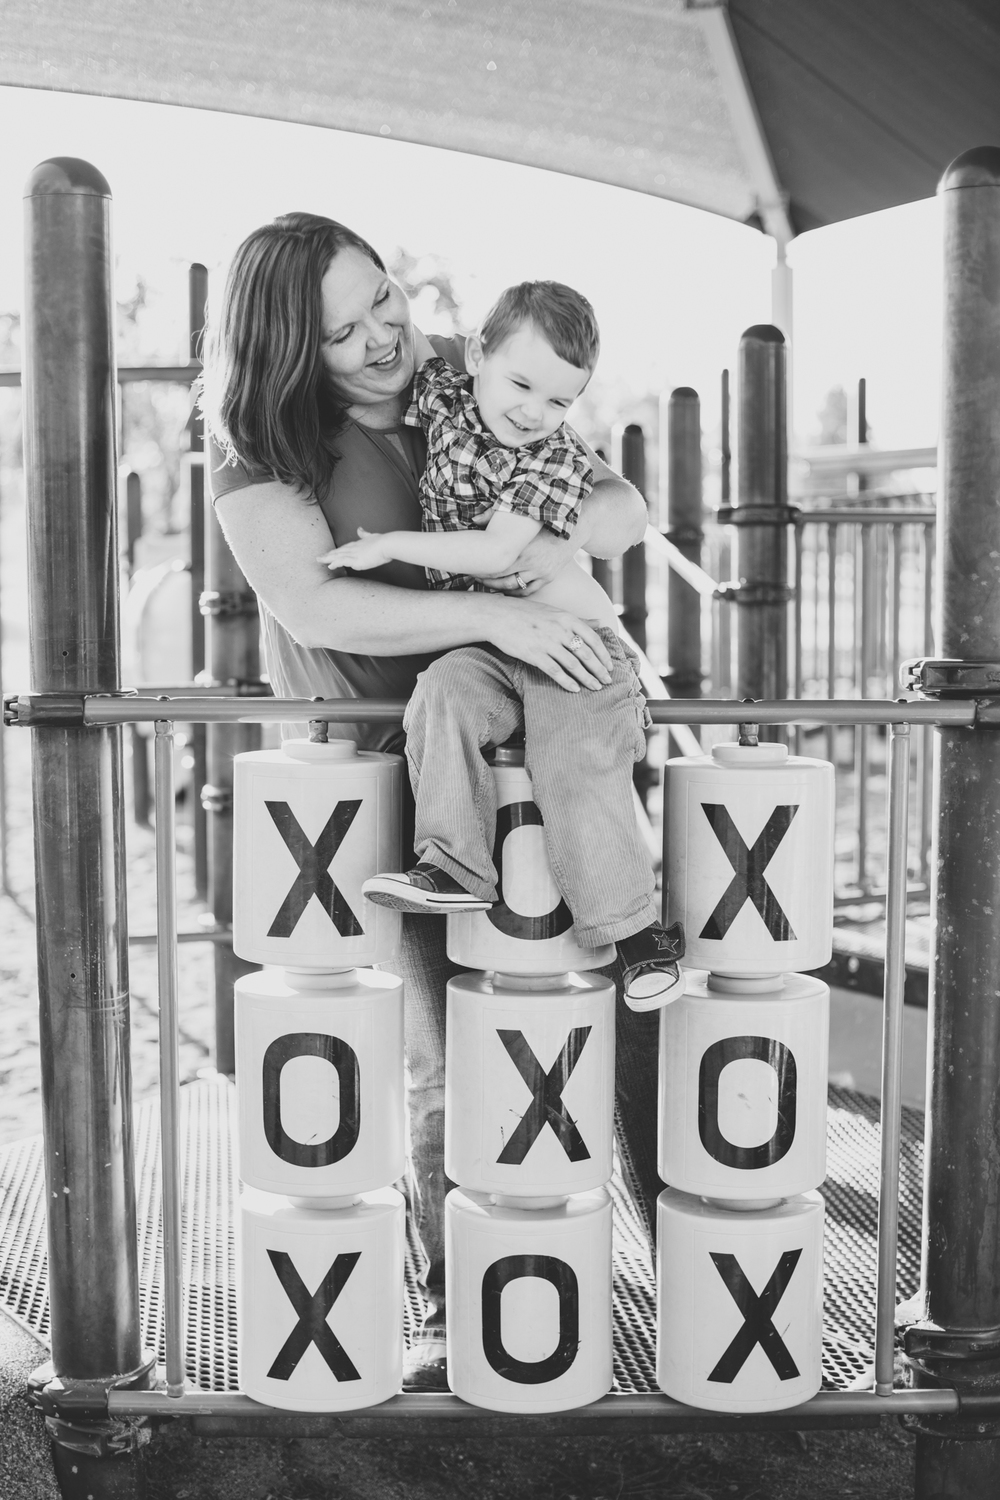 vanessa and her son xoxo bw chaparral park scottsdale az